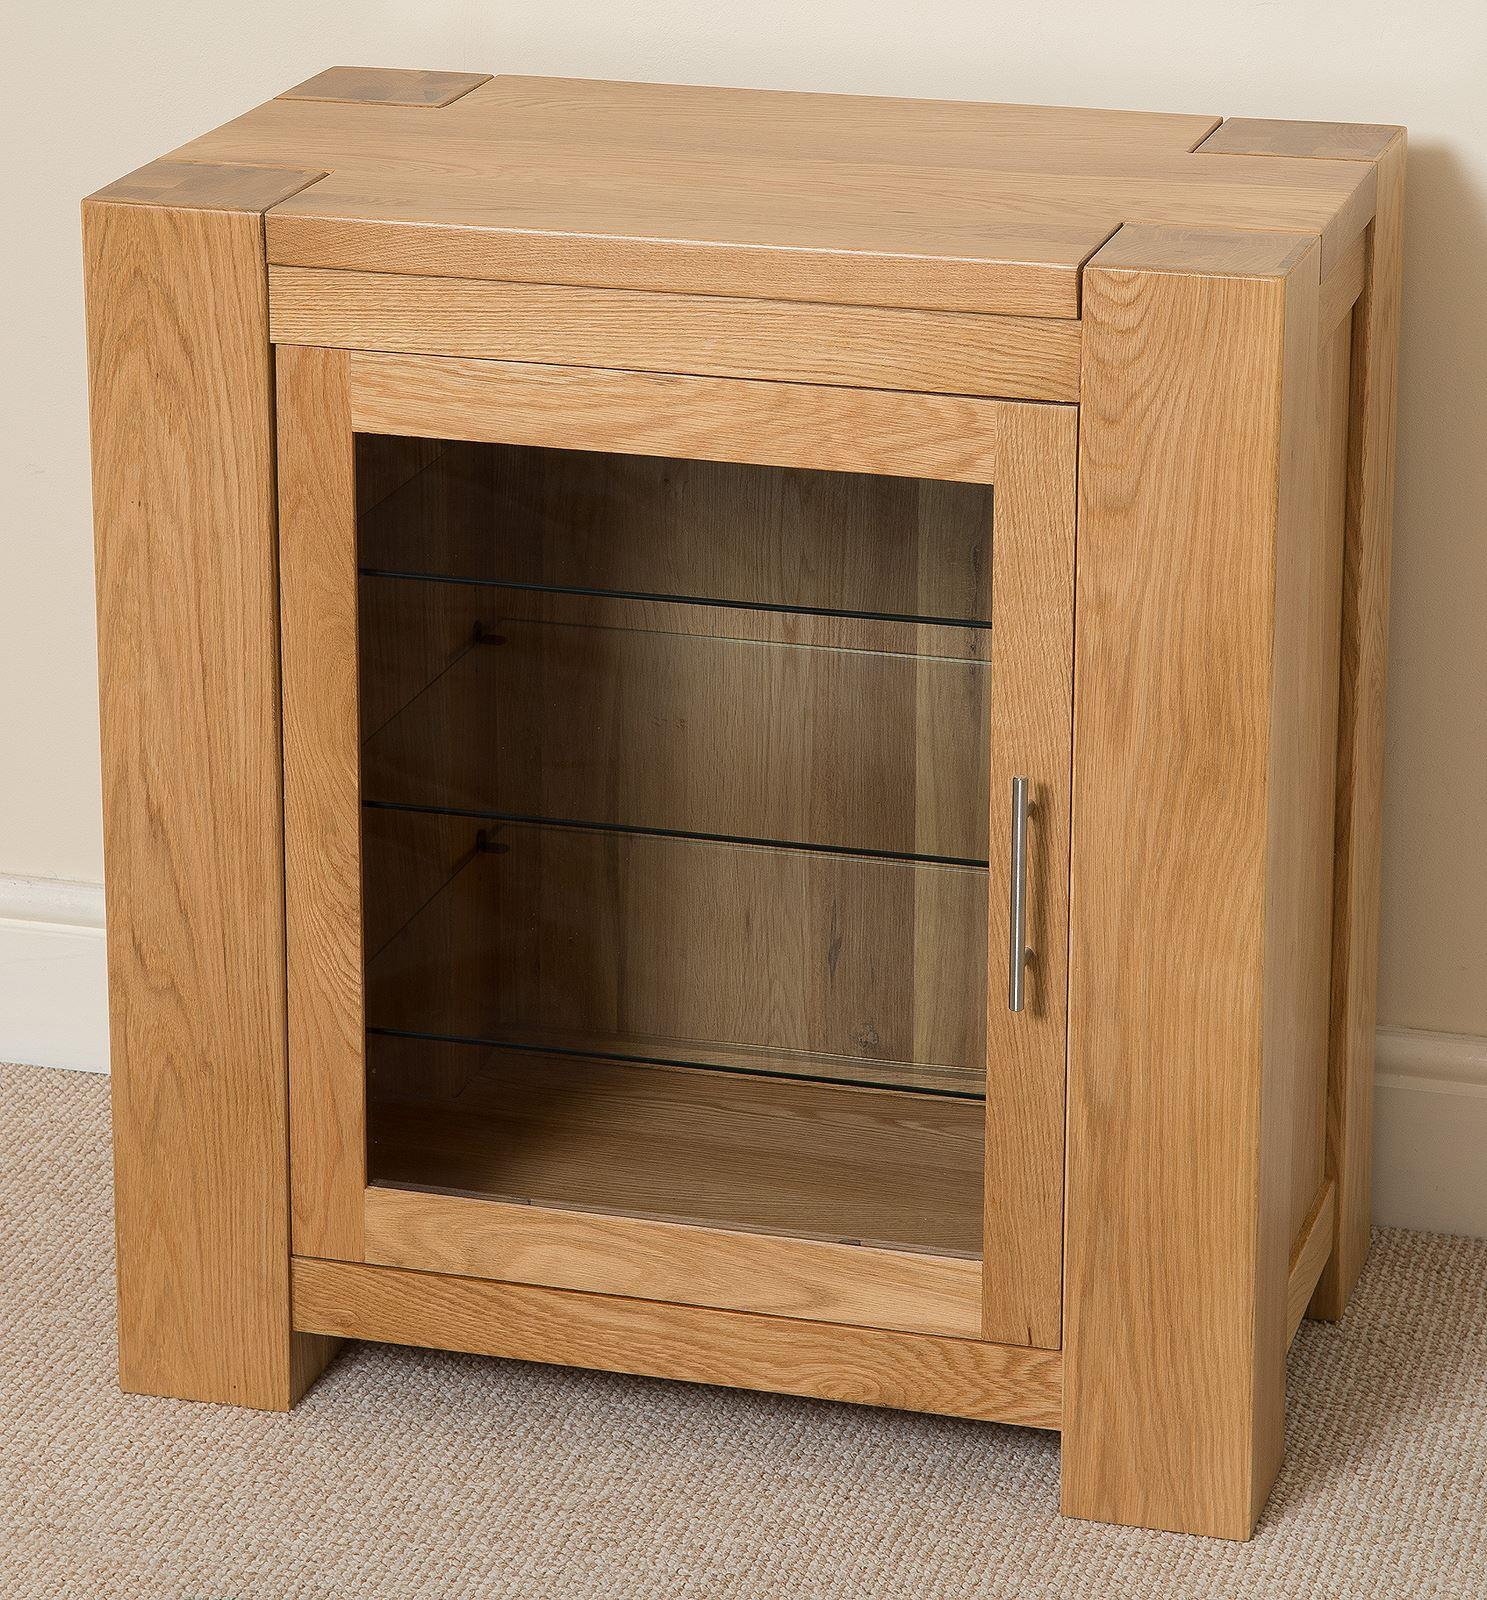 Kuba Solid Oak HI-FI Media Storage